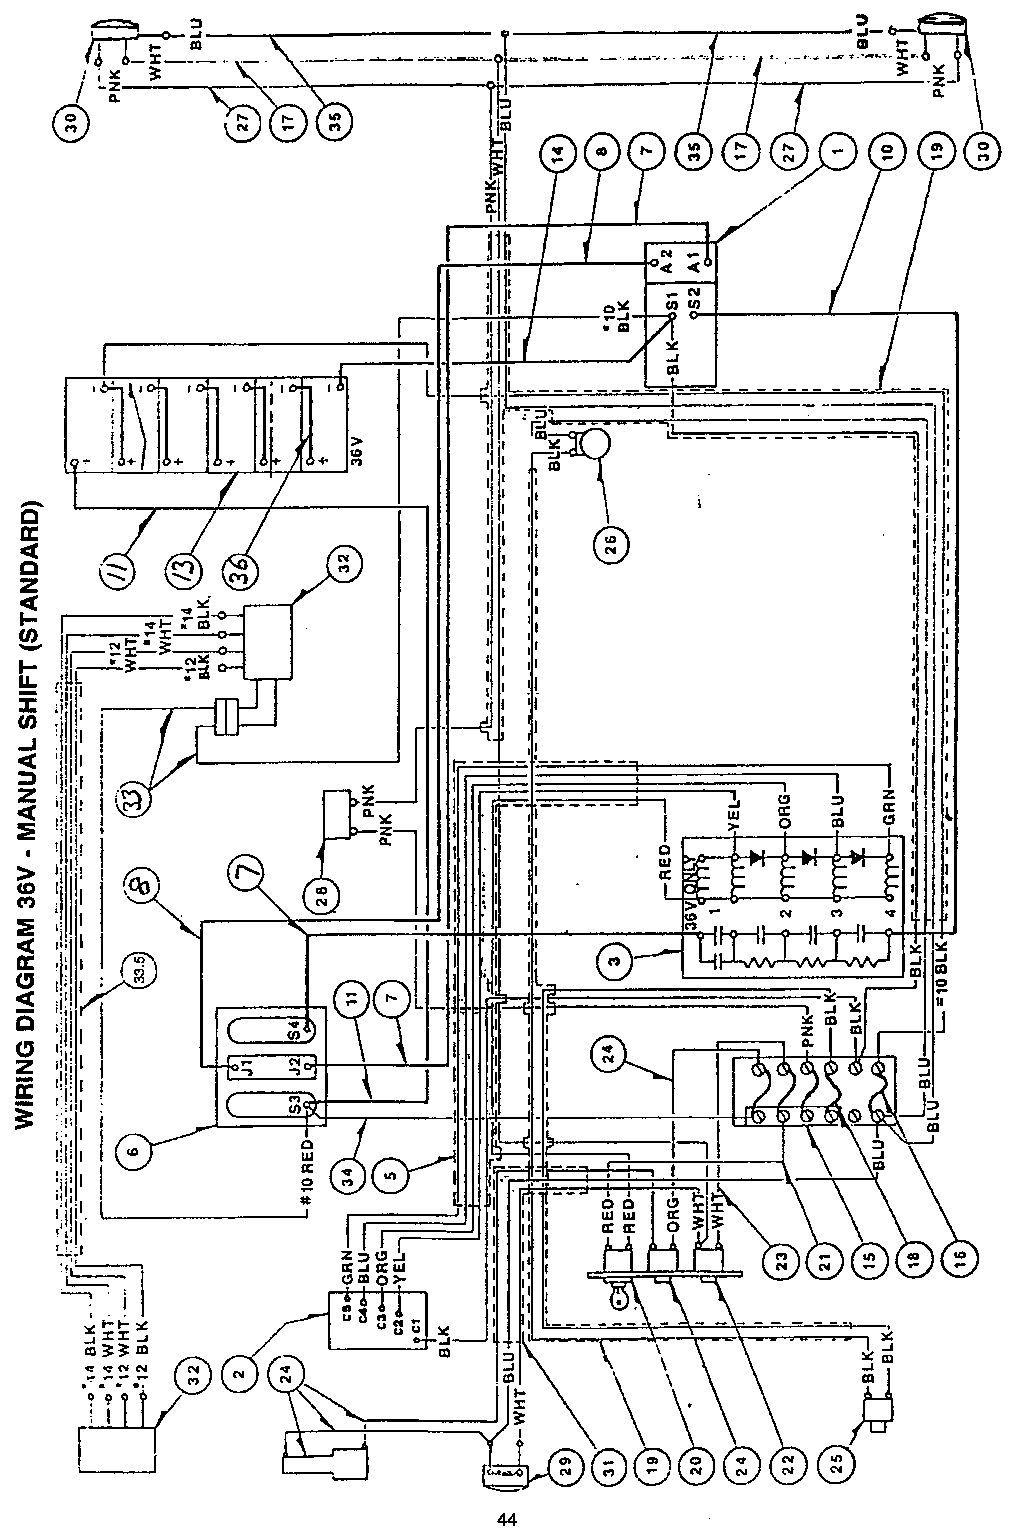 2003 saturn l200 fuse box diagram saturn auto fuse box